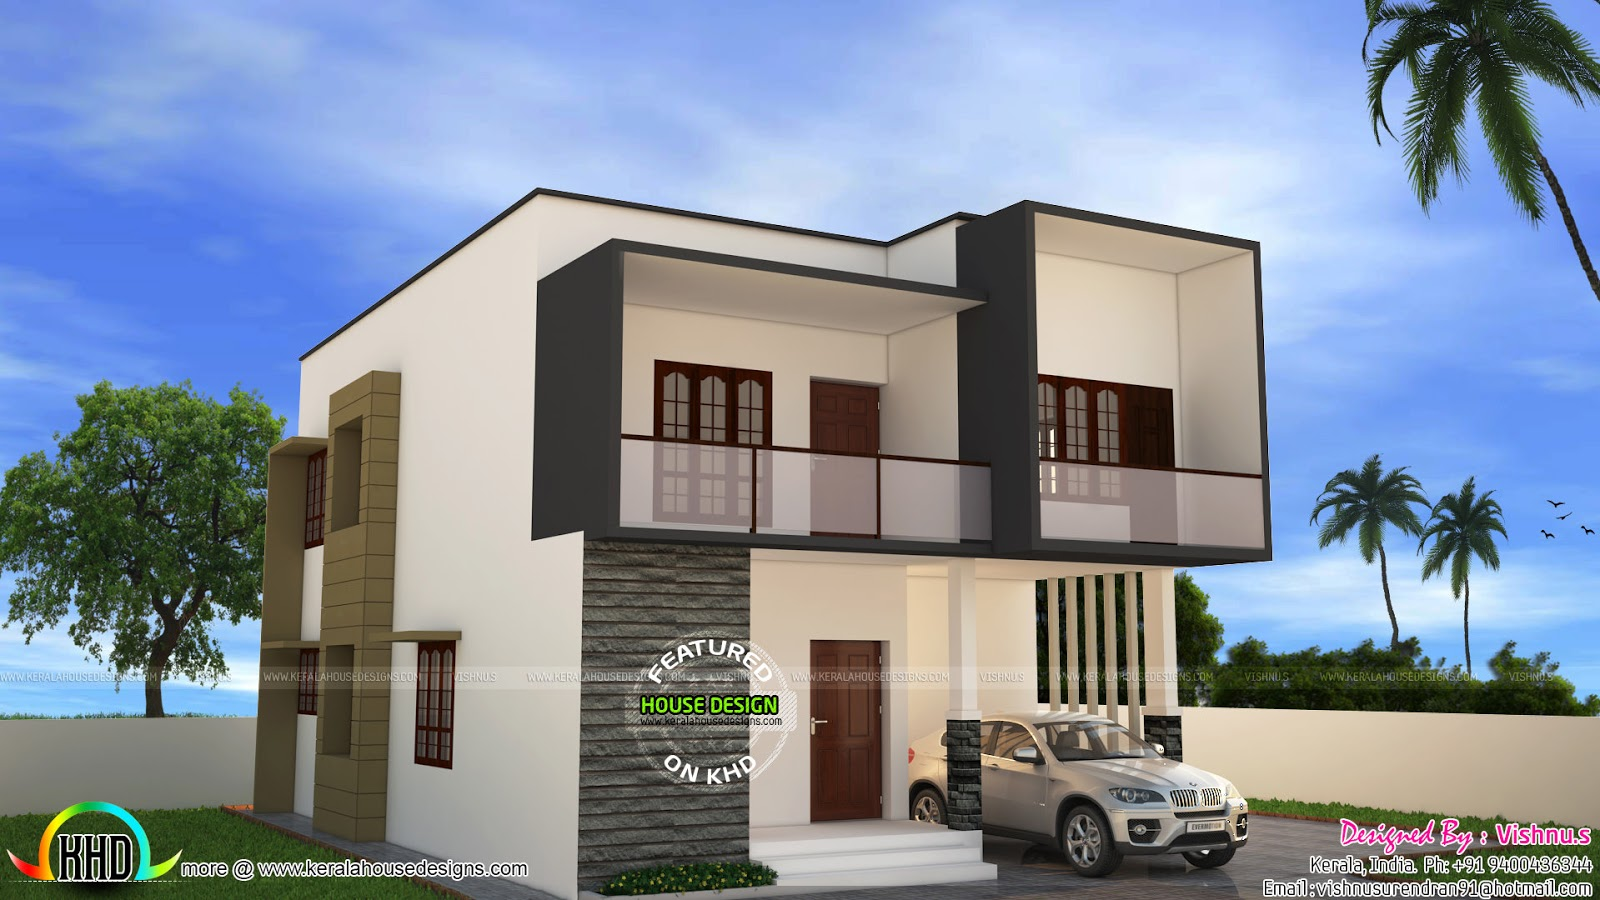 Simple modern house by vishnu s home design decor for Simple house blueprint